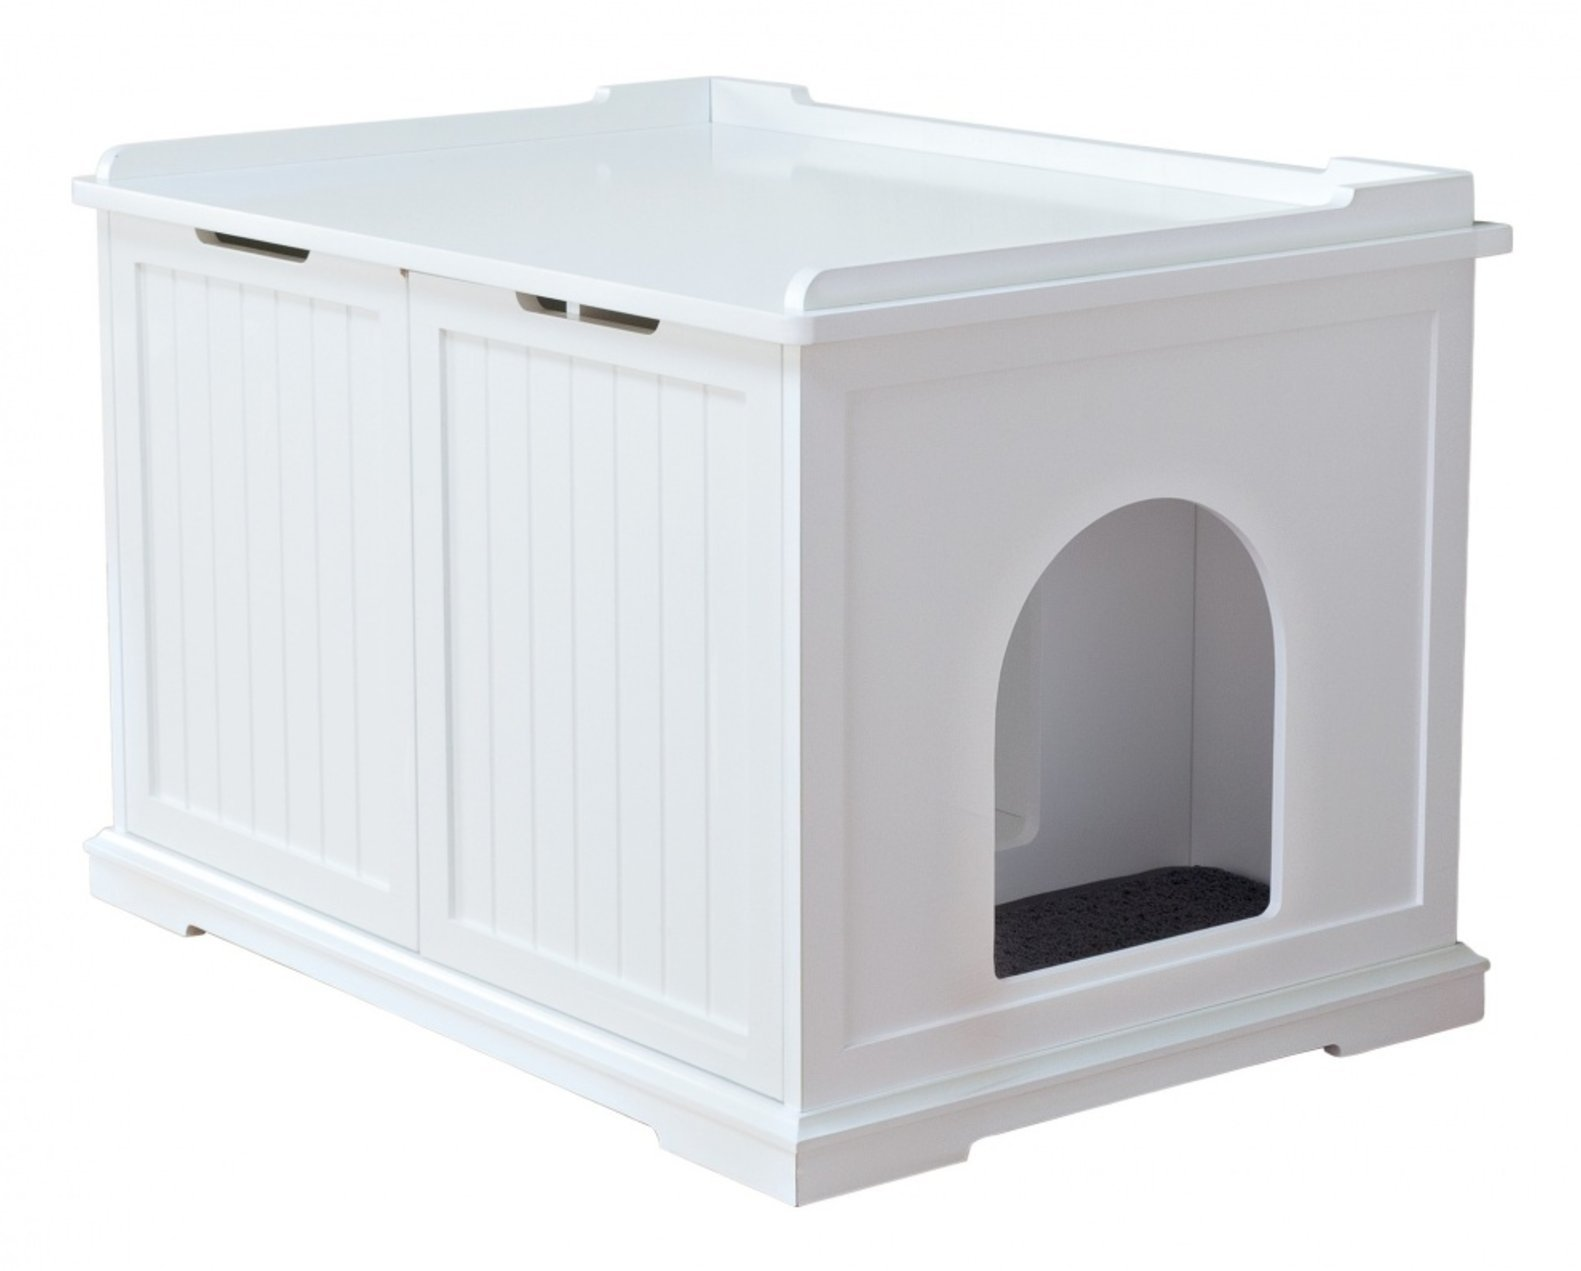 TRIXIE Pet Products Wooden Pet House X-Large and Litter Box, White